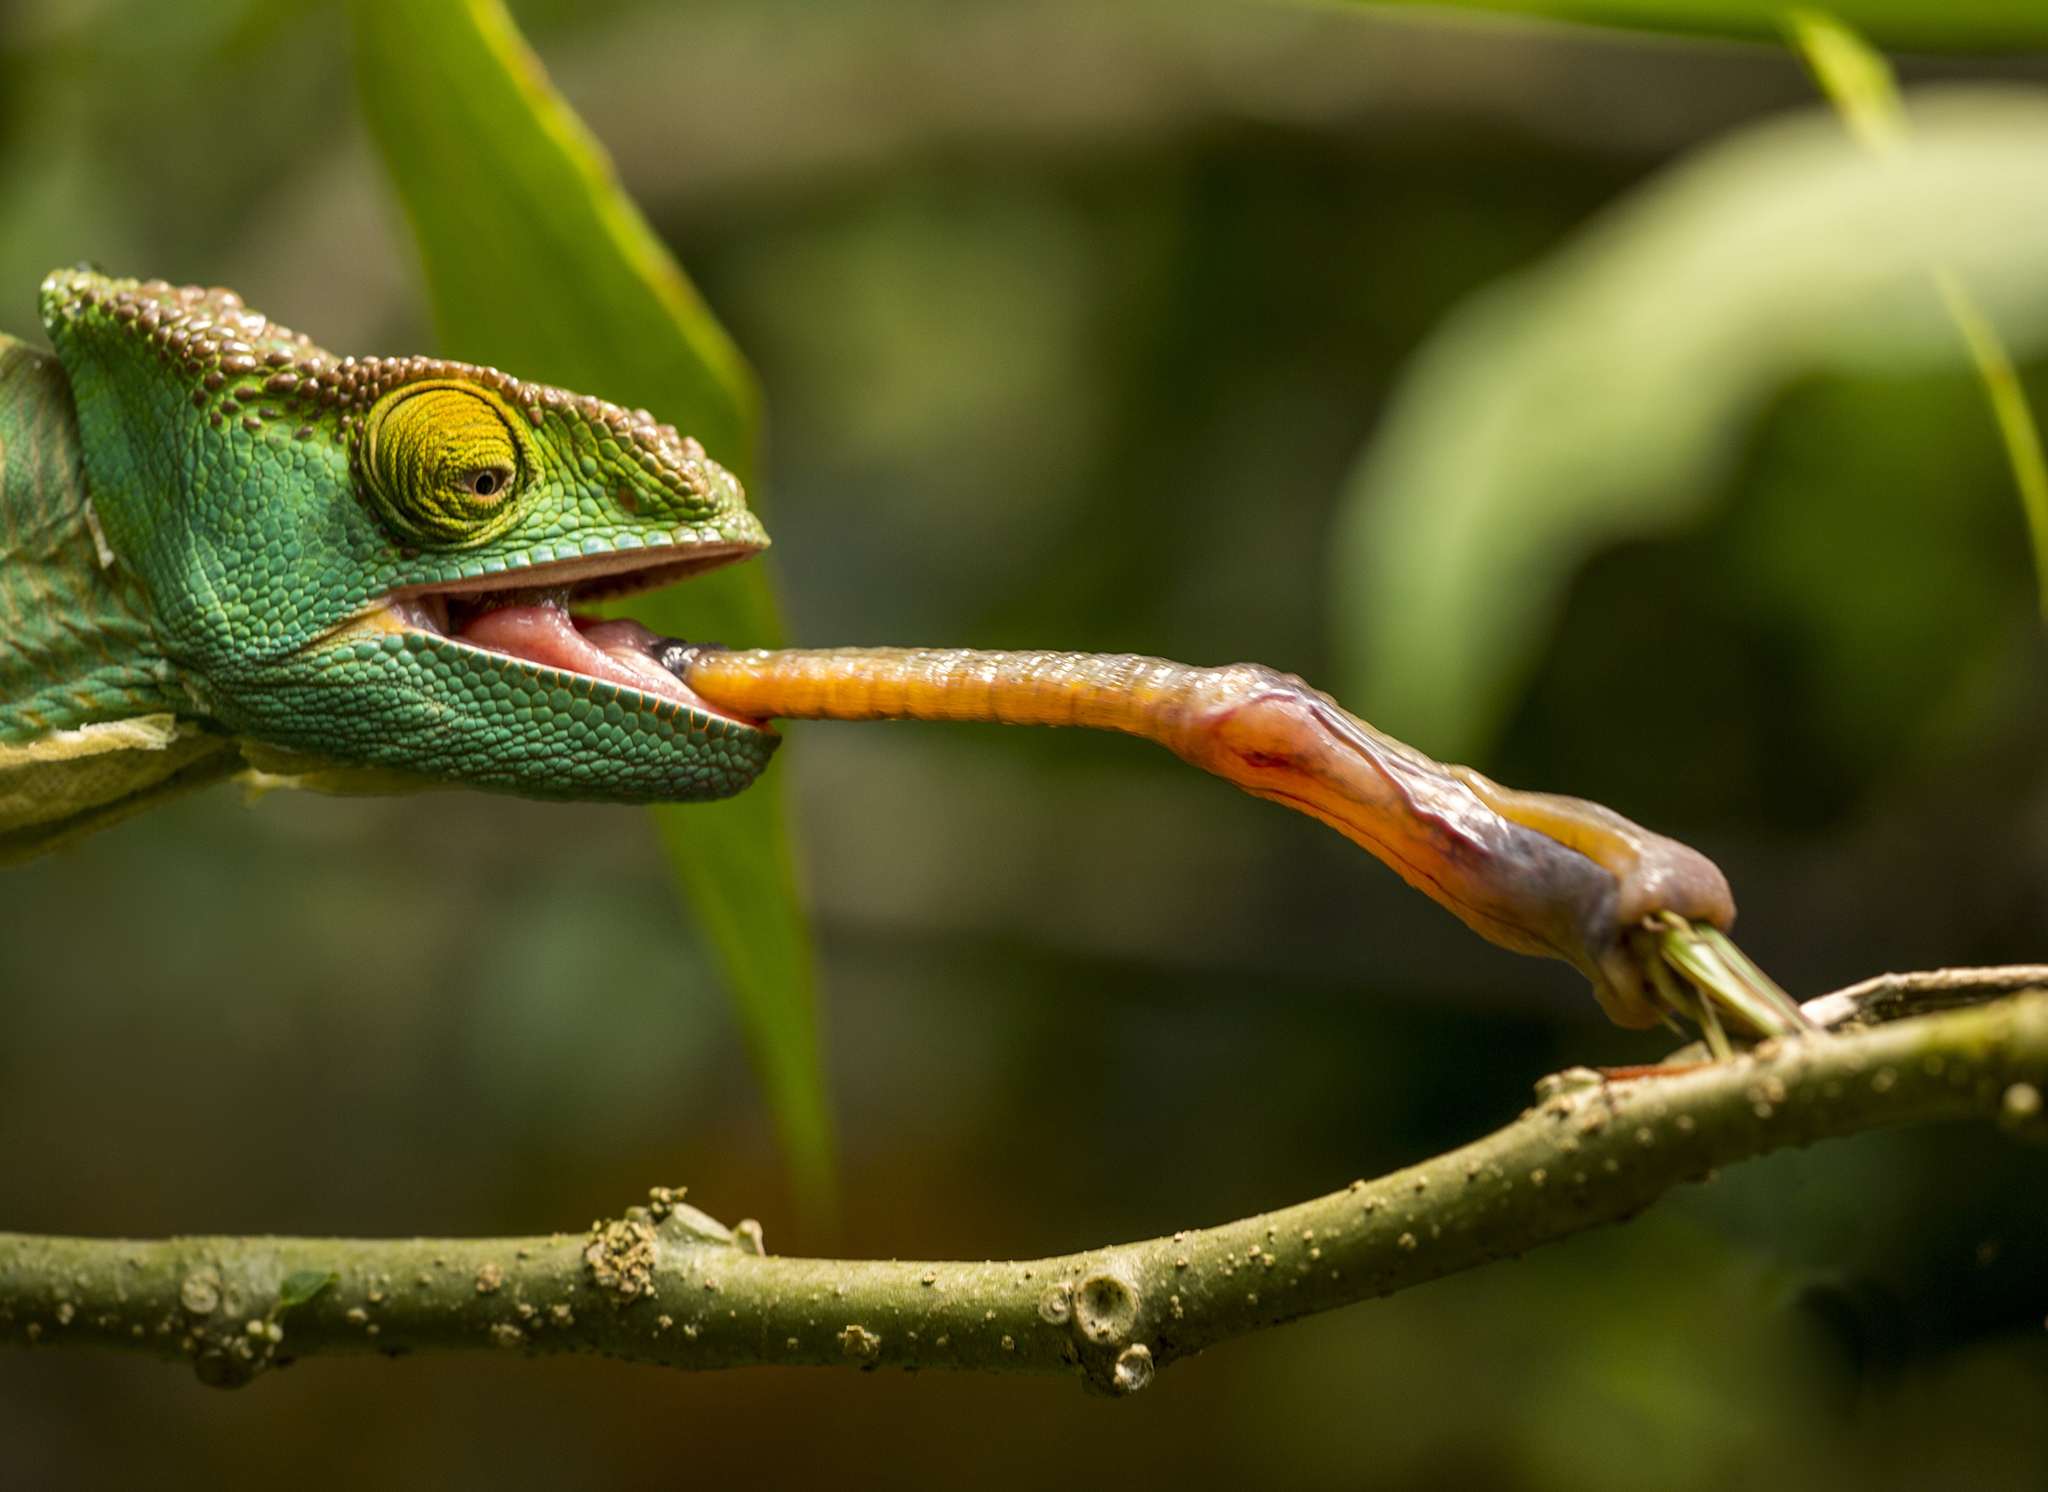 Chameleons don't have manners; they just fling their tongues to capture prey.